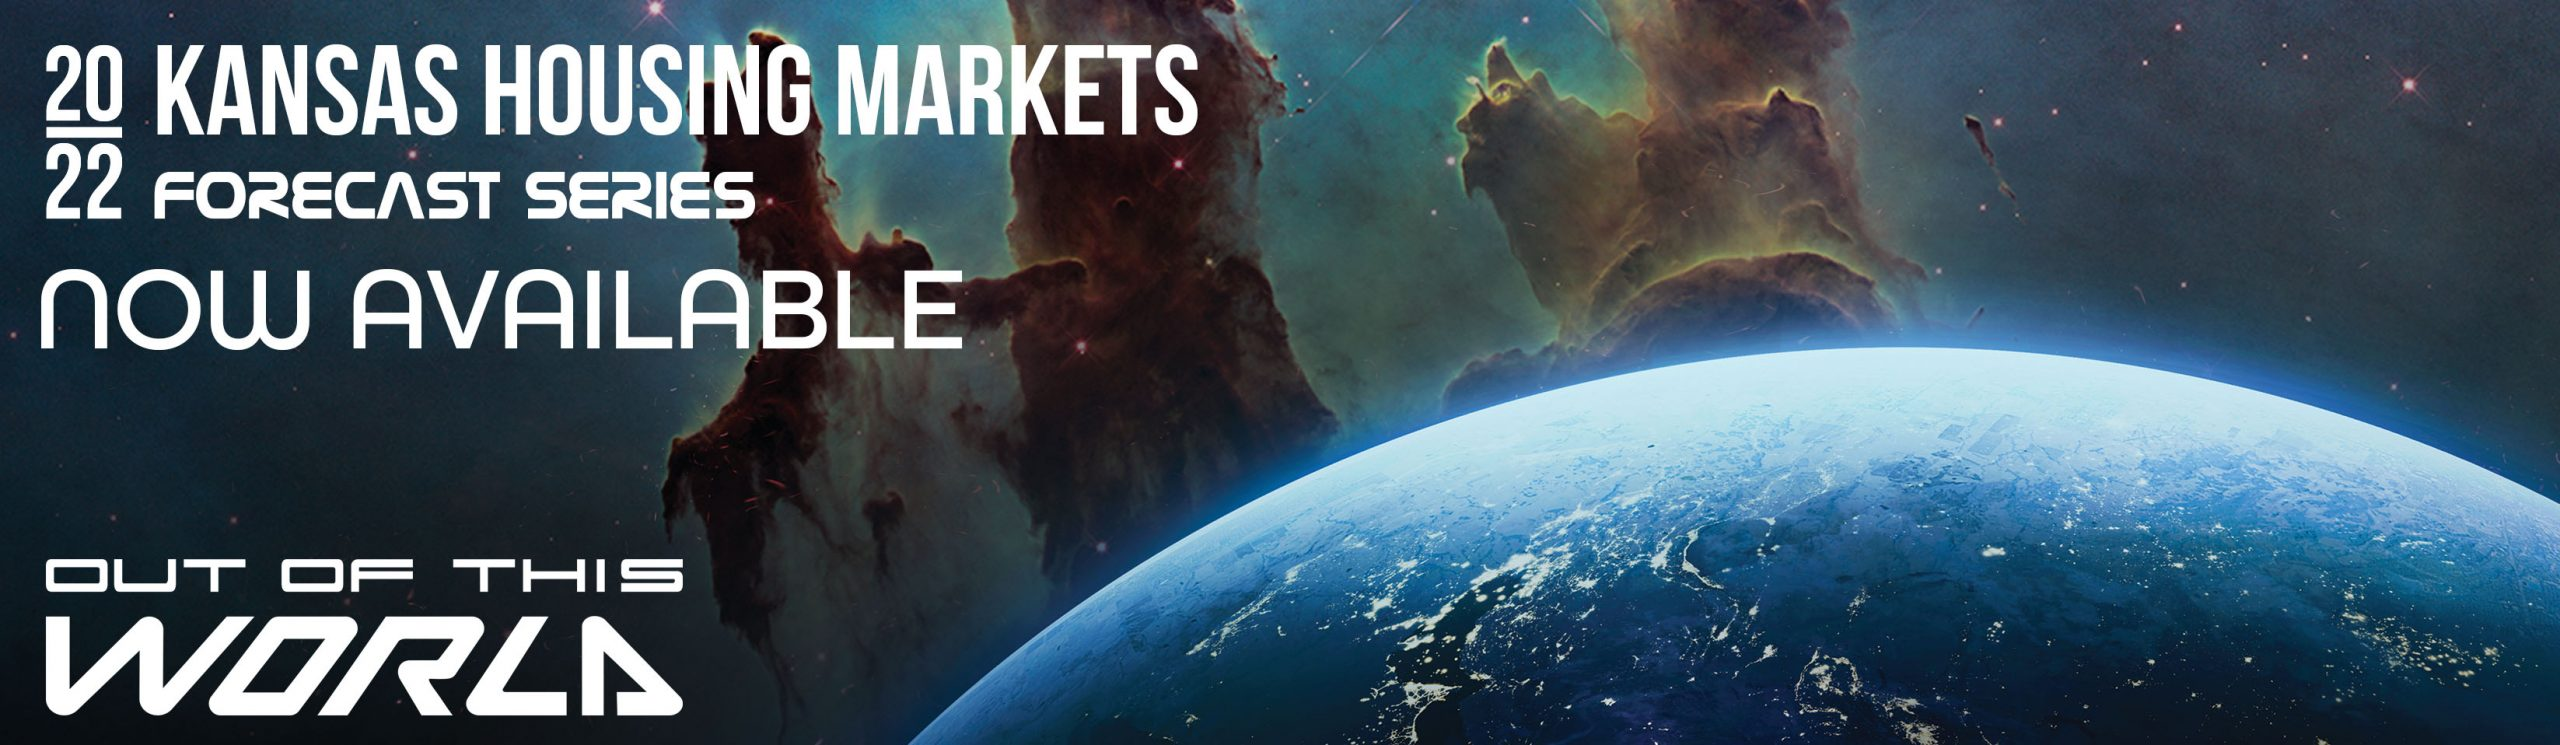 """2022 Kansas Housing Markets Forecast Series Now Available. Forecast theme is """"Out of this World."""""""